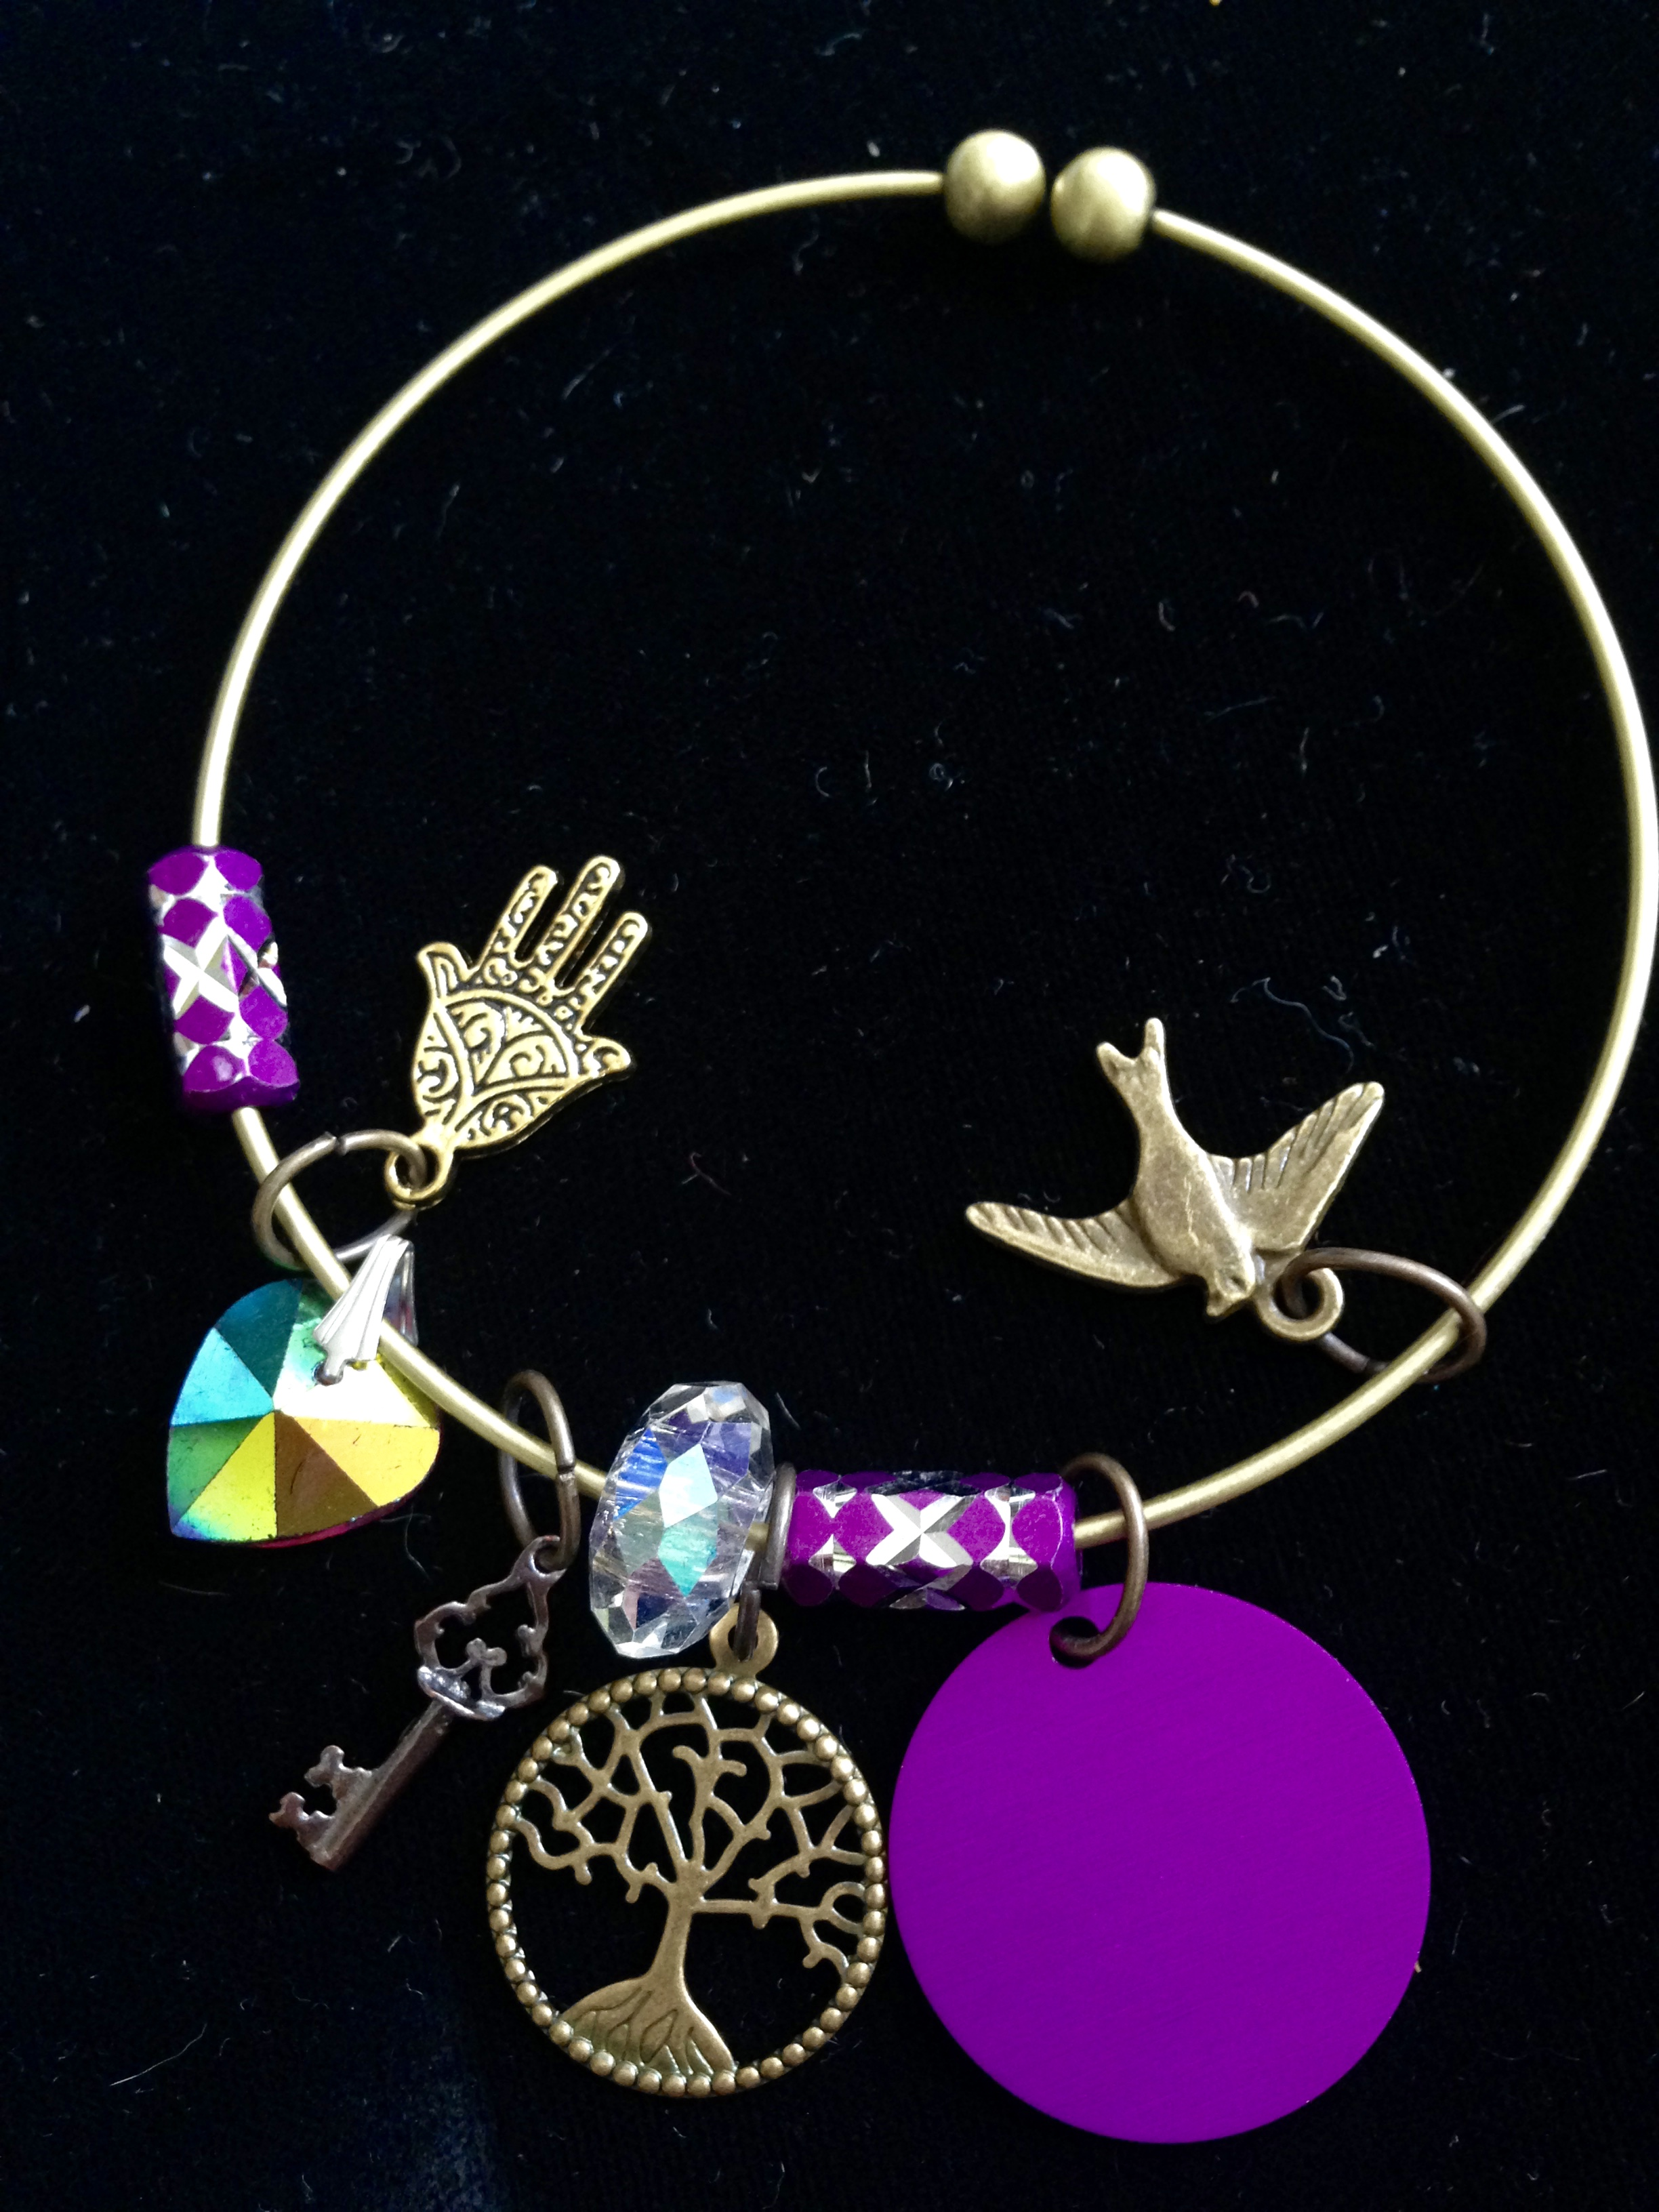 Violet Illumination Charm Bangle